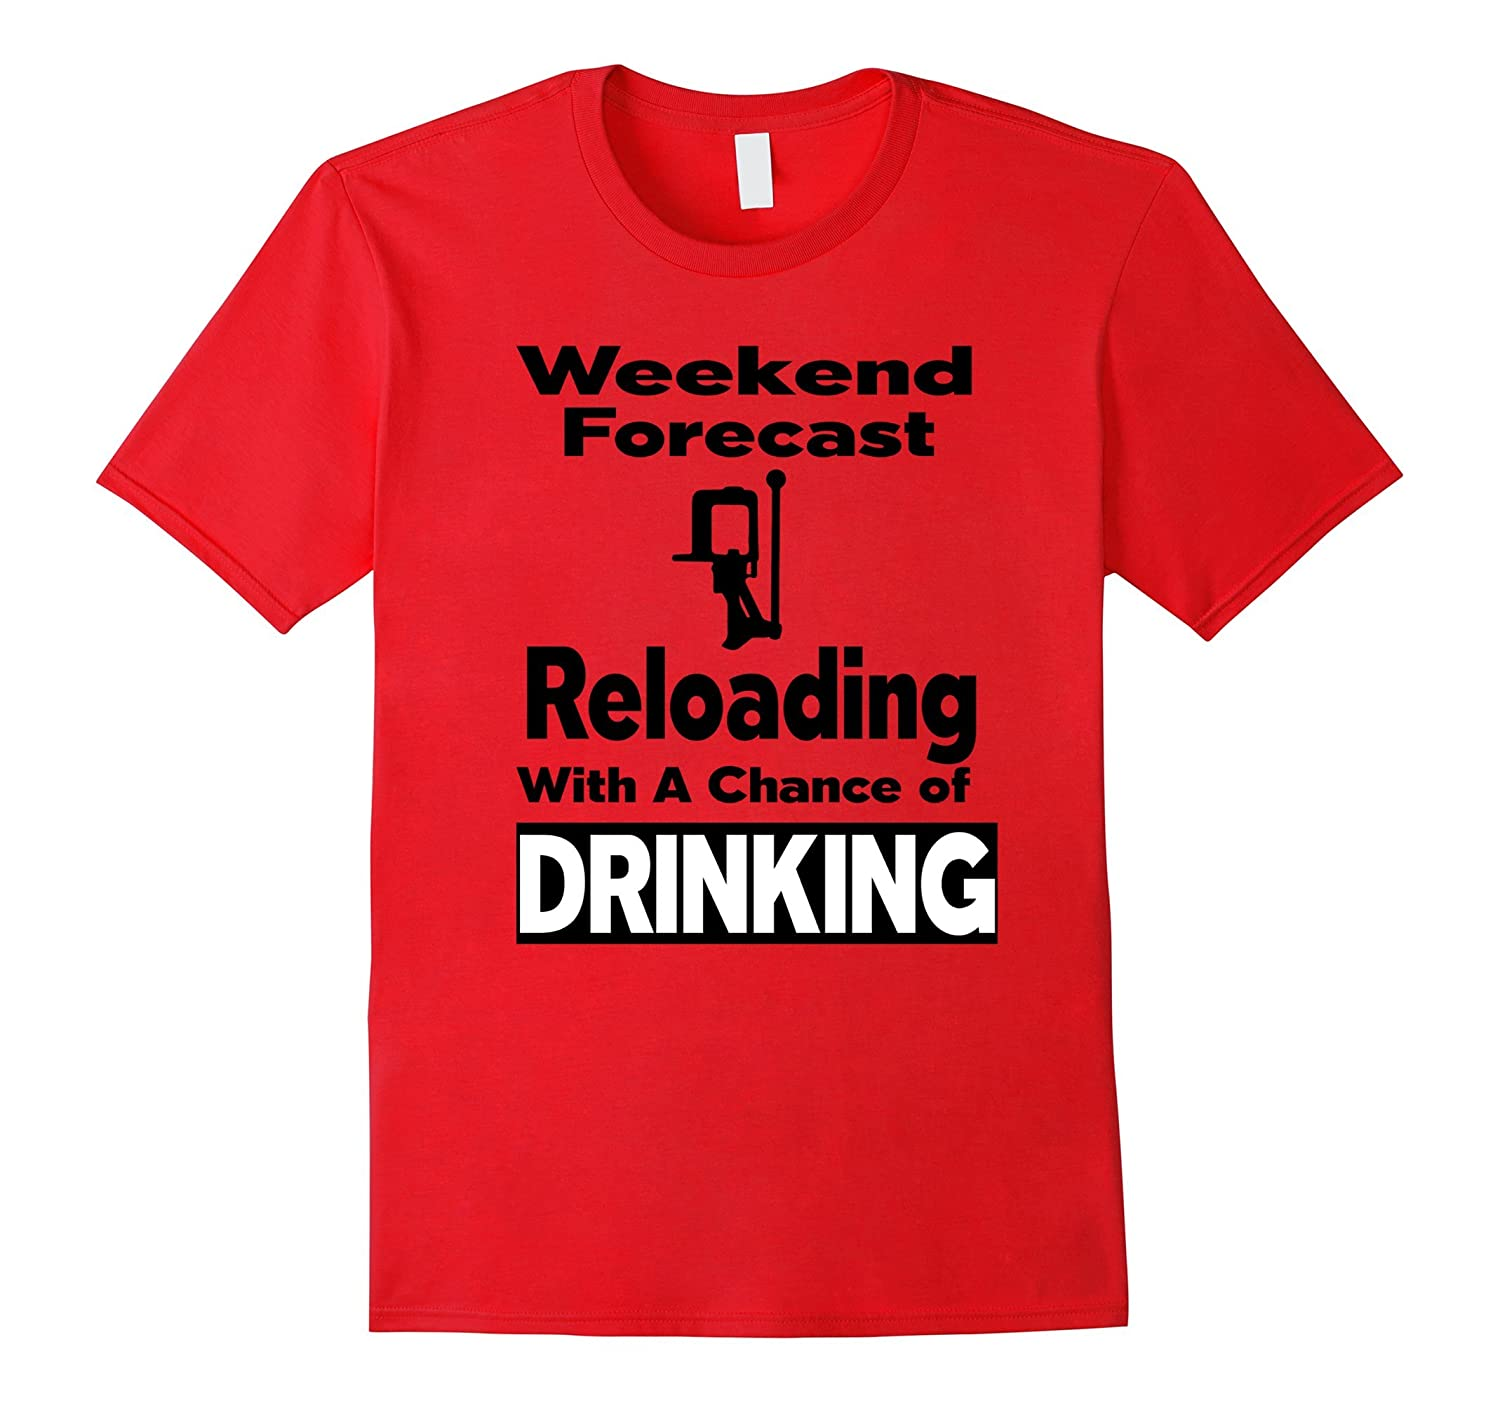 Weekend Forecast Reloading with A Chance of Drinking T-Shirt-ah my shirt one gift